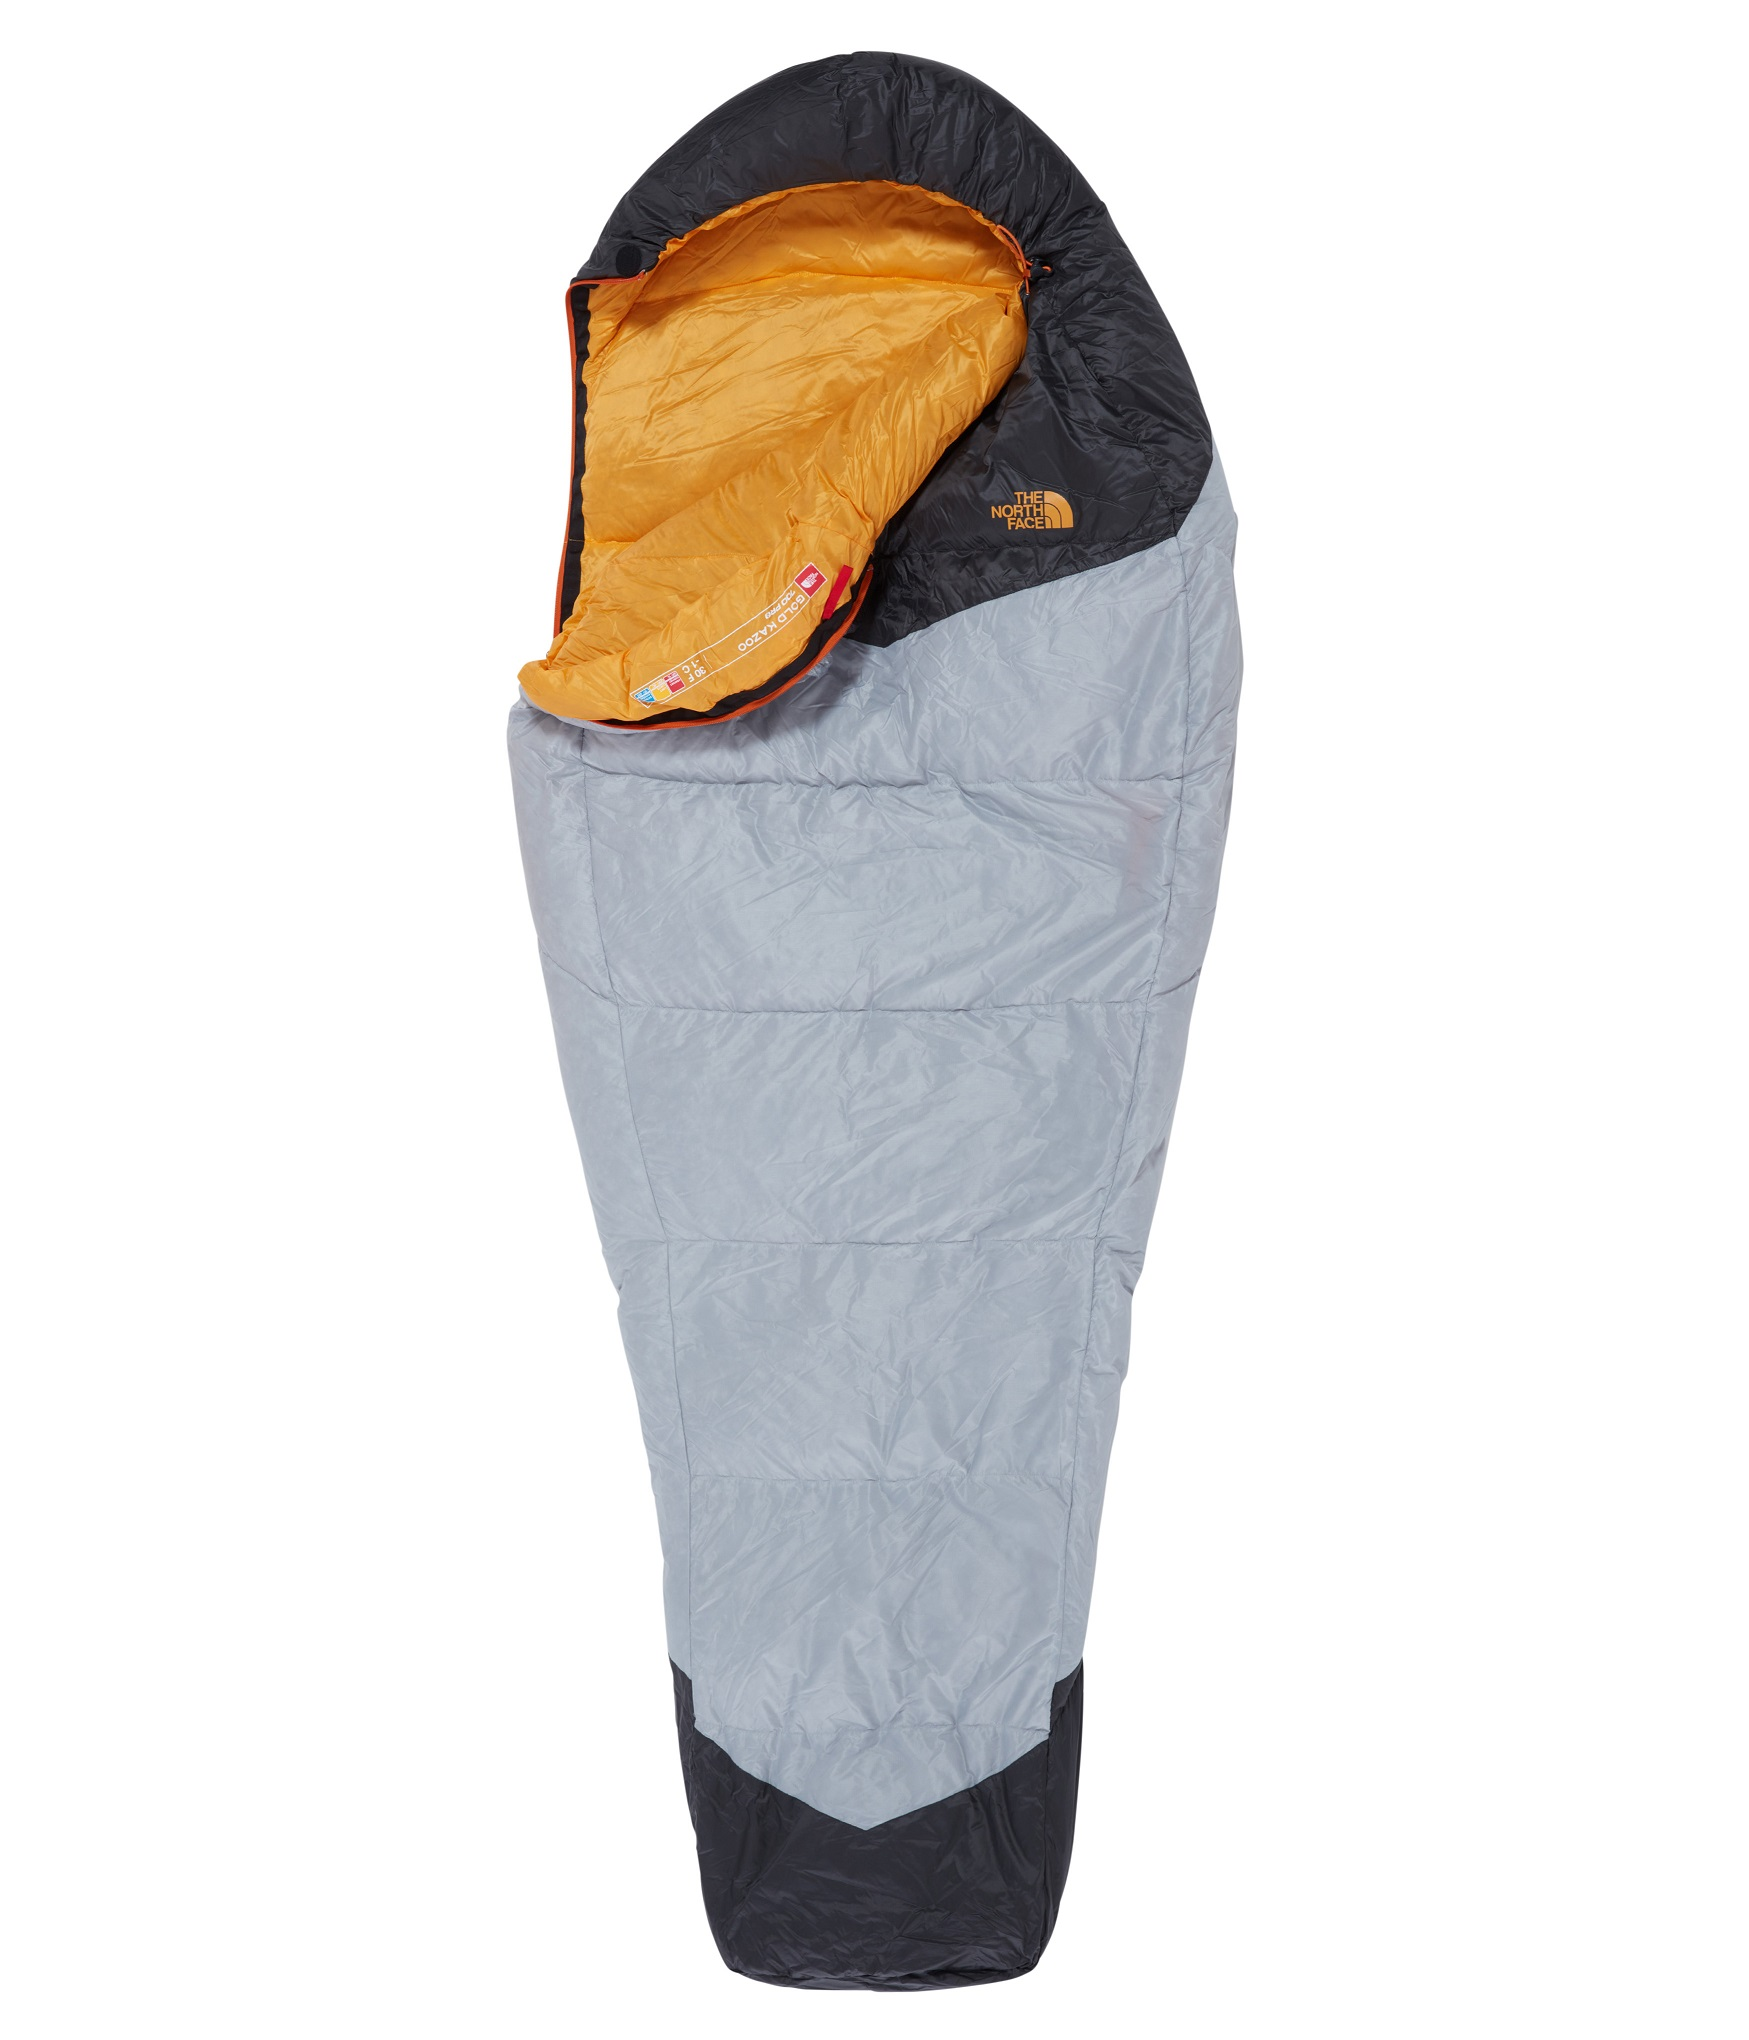 Спальник The North Face Gold Kazoo High Rise Grey/Radiant Yellow - Фото 1 большая